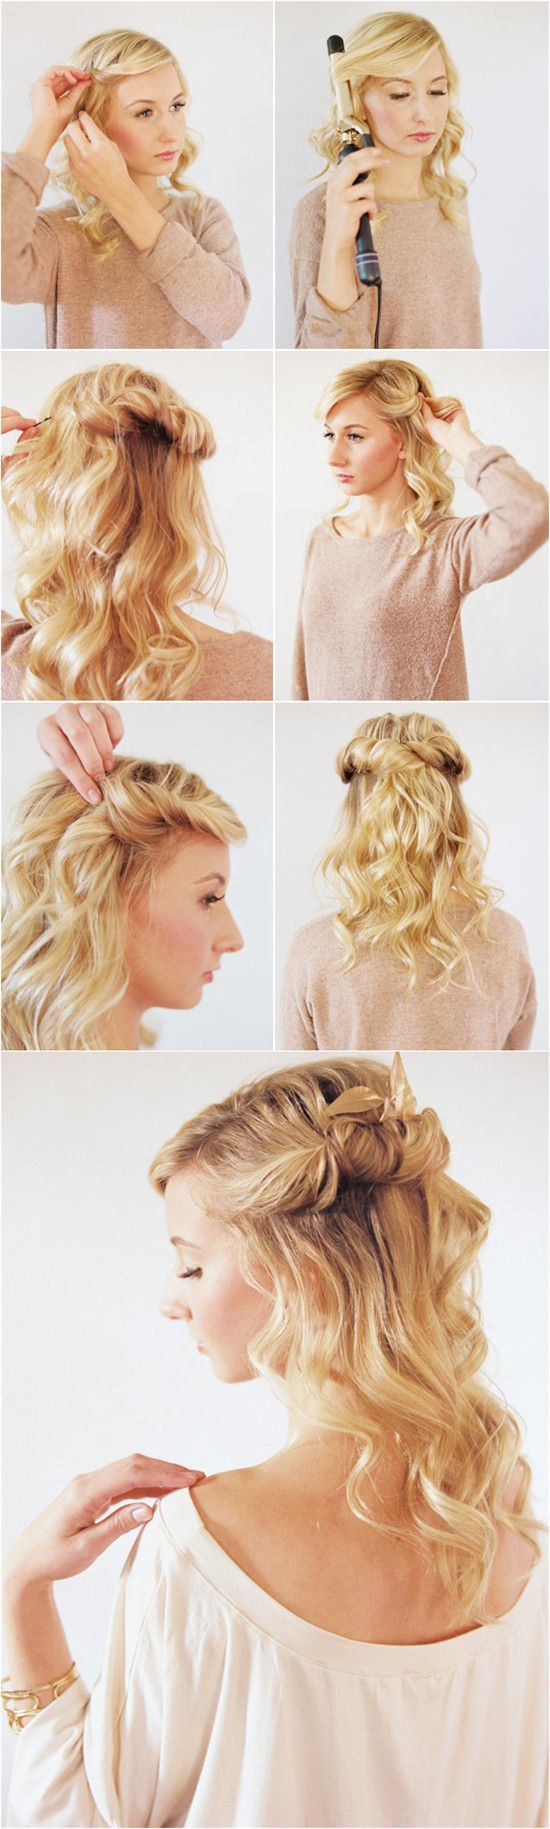 how to choose haircut 48 best images about hairstyles tutorial on 4910 | 3099f033ff88d8c557f1e19ad4910ac2 layer cakes halo hair